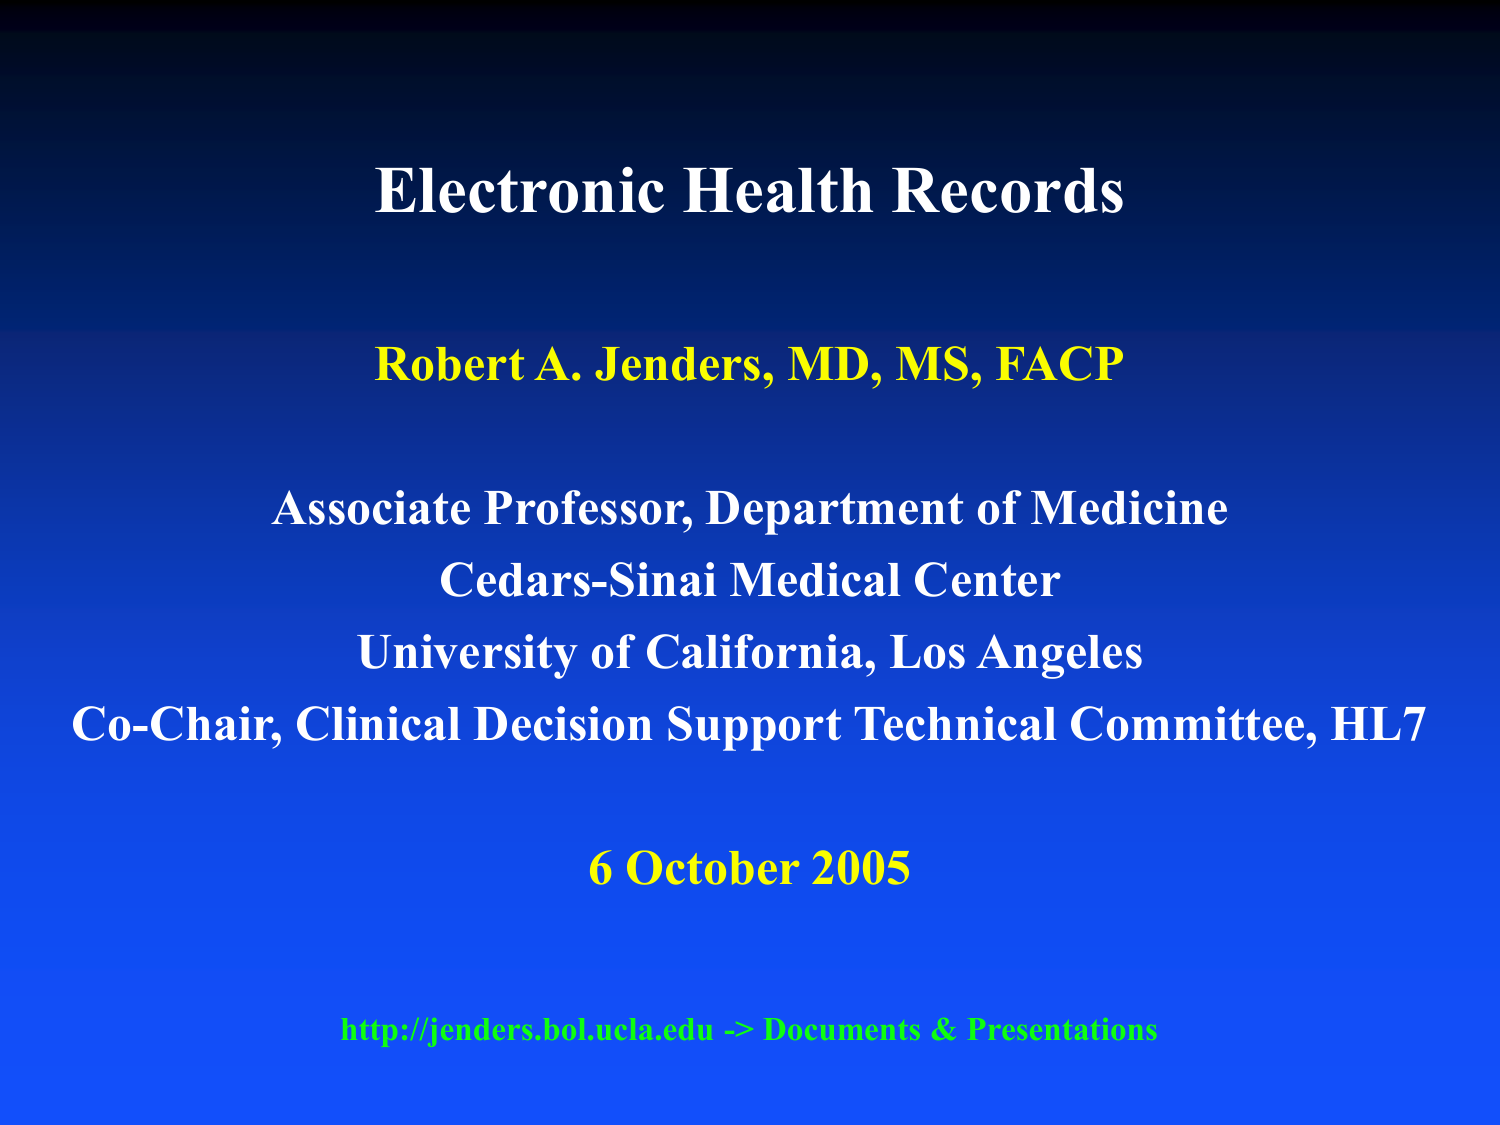 Electronic Medical Records - Robert A  Jenders, MD, MS